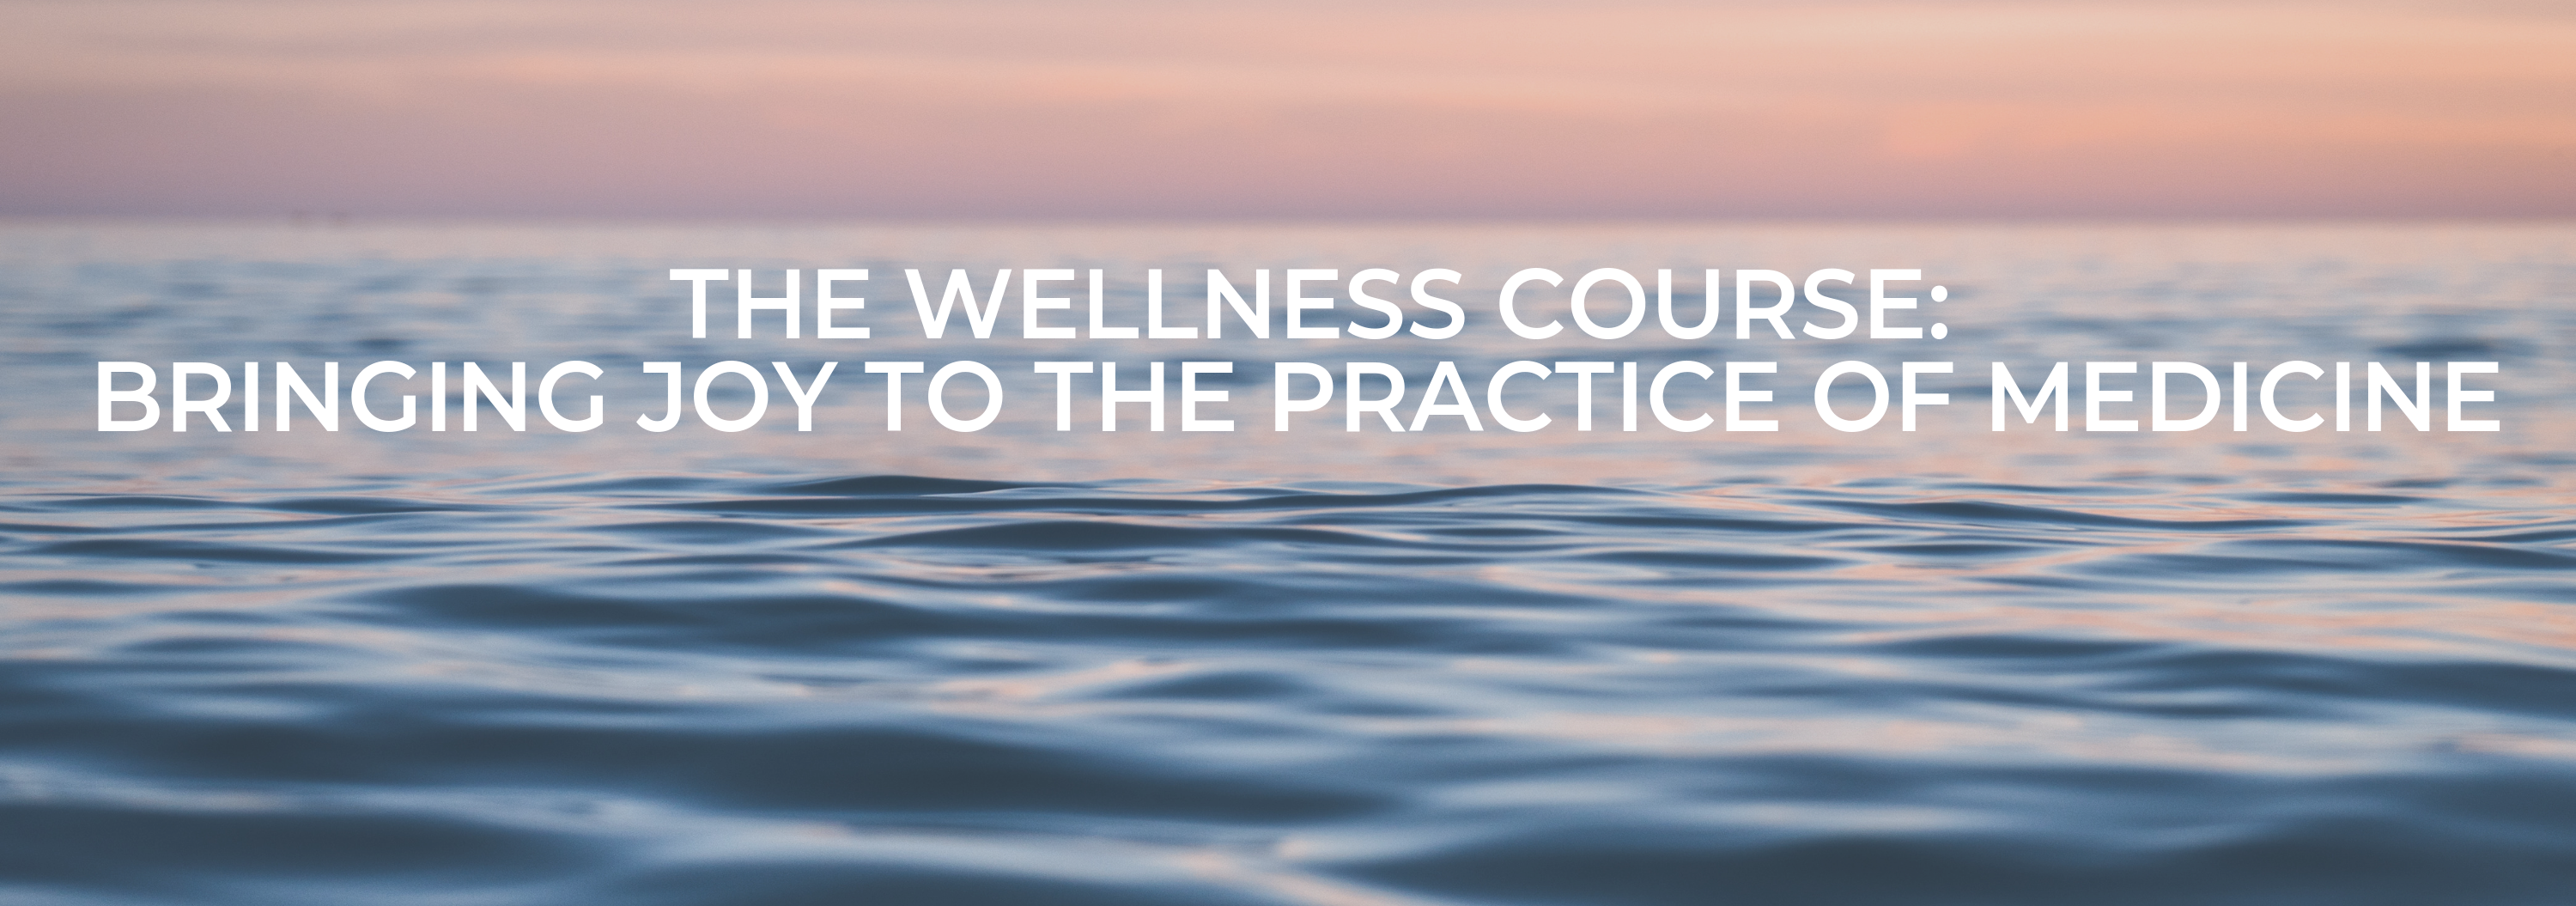 The Wellness Course: Bringing Joy to the Practice of